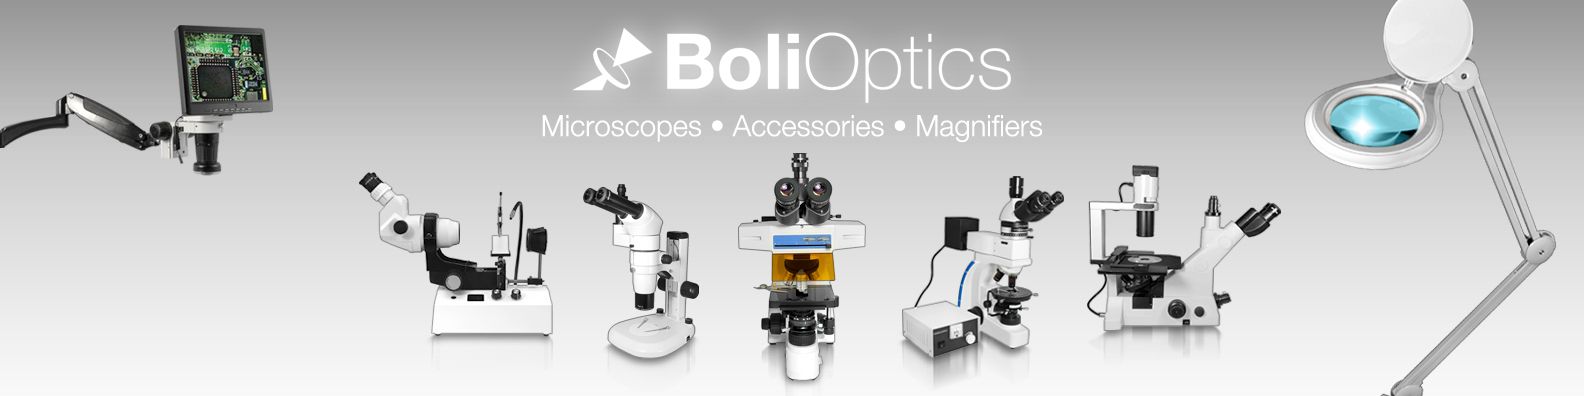 Boli Optics Microscopes, Microscope Accessories and Magnifying Lamps